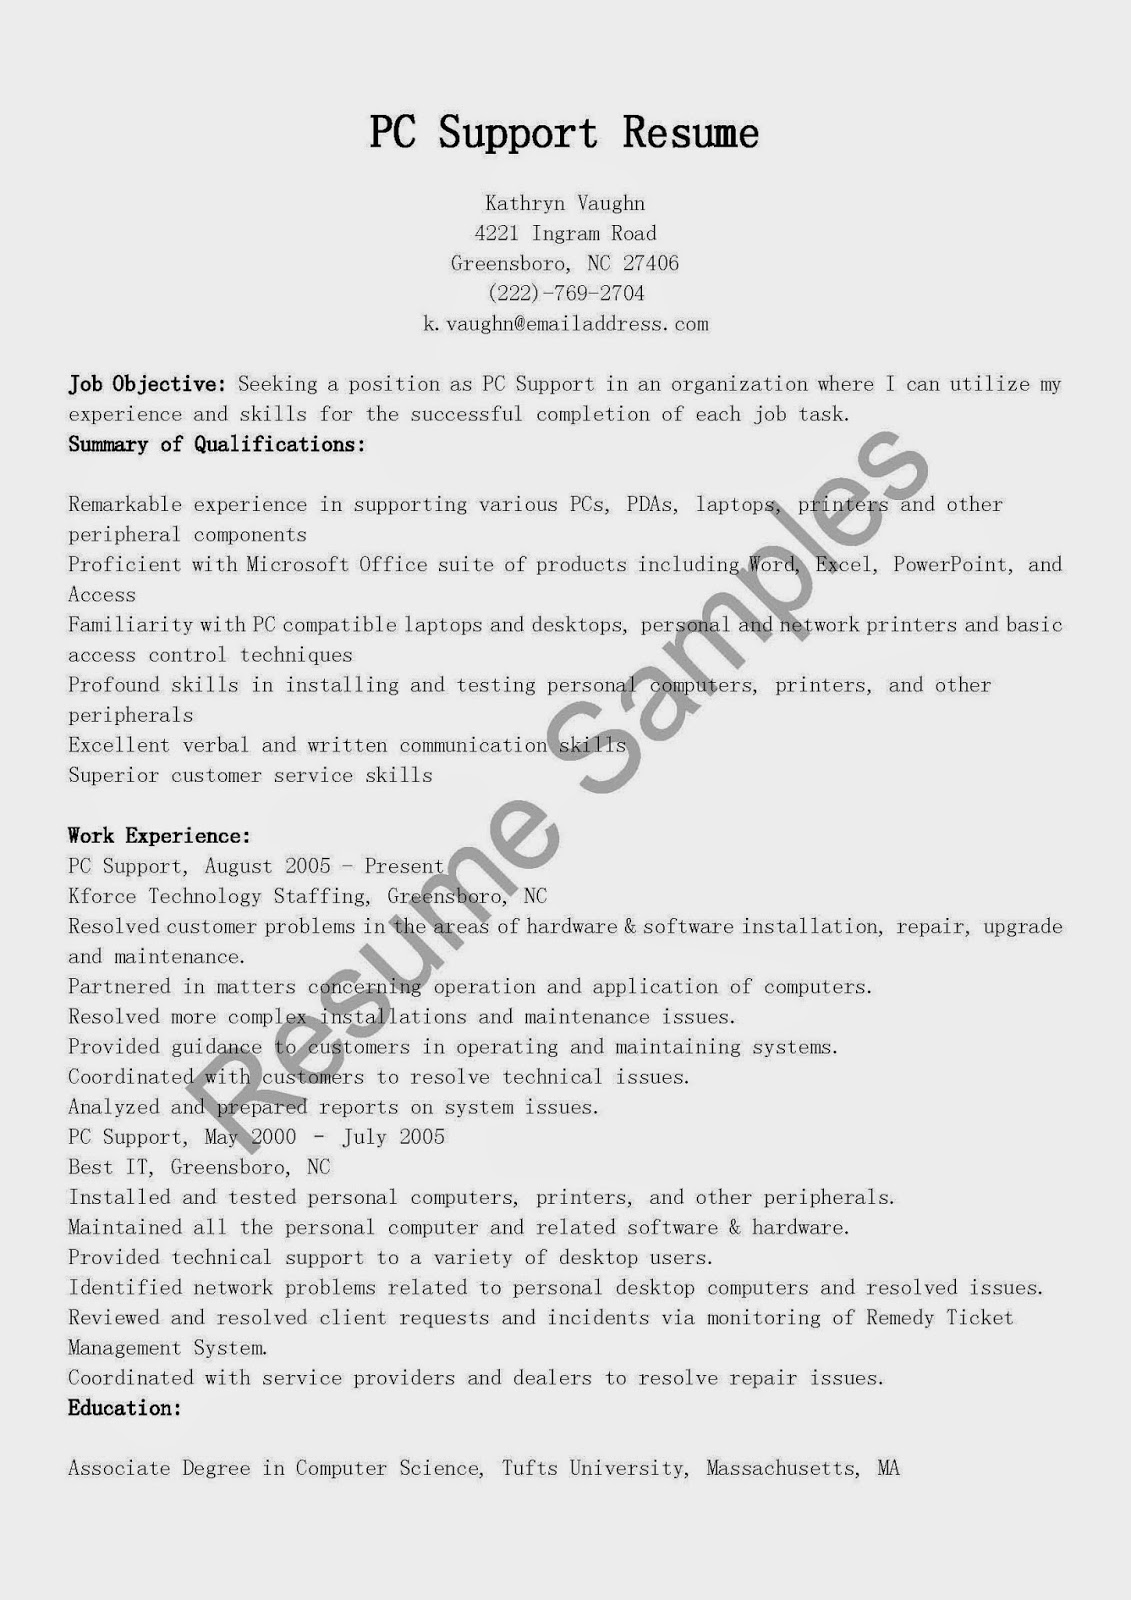 resume samples  pc support resume sample